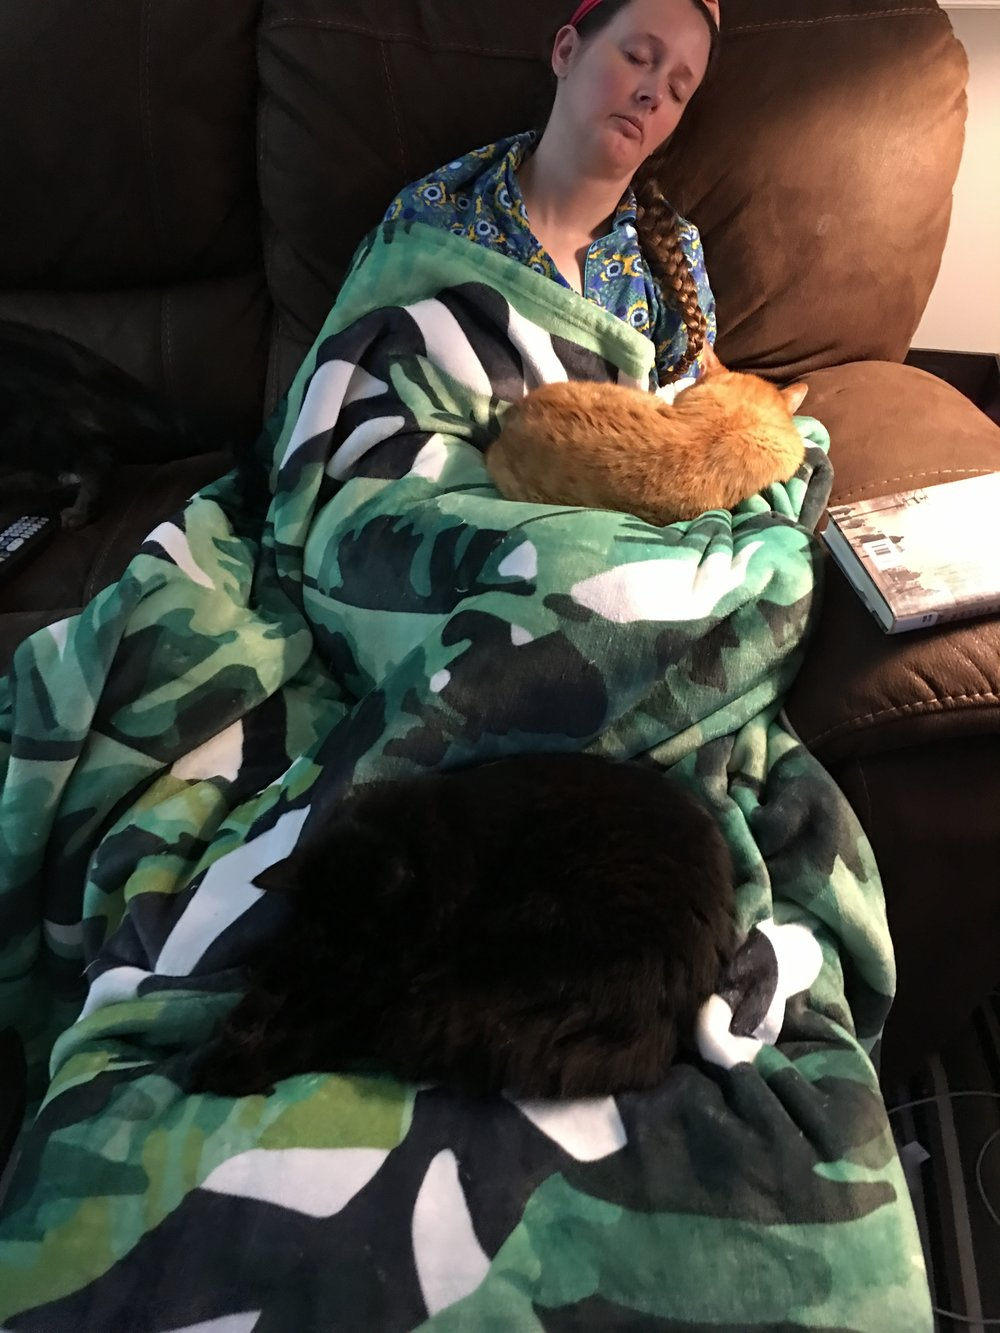 Not a super flattering picture of me, but Bryon took it. He said he just missed the moment when all three cats were sleeping on me. Told you, I don't move much when I am on my depression-spot!